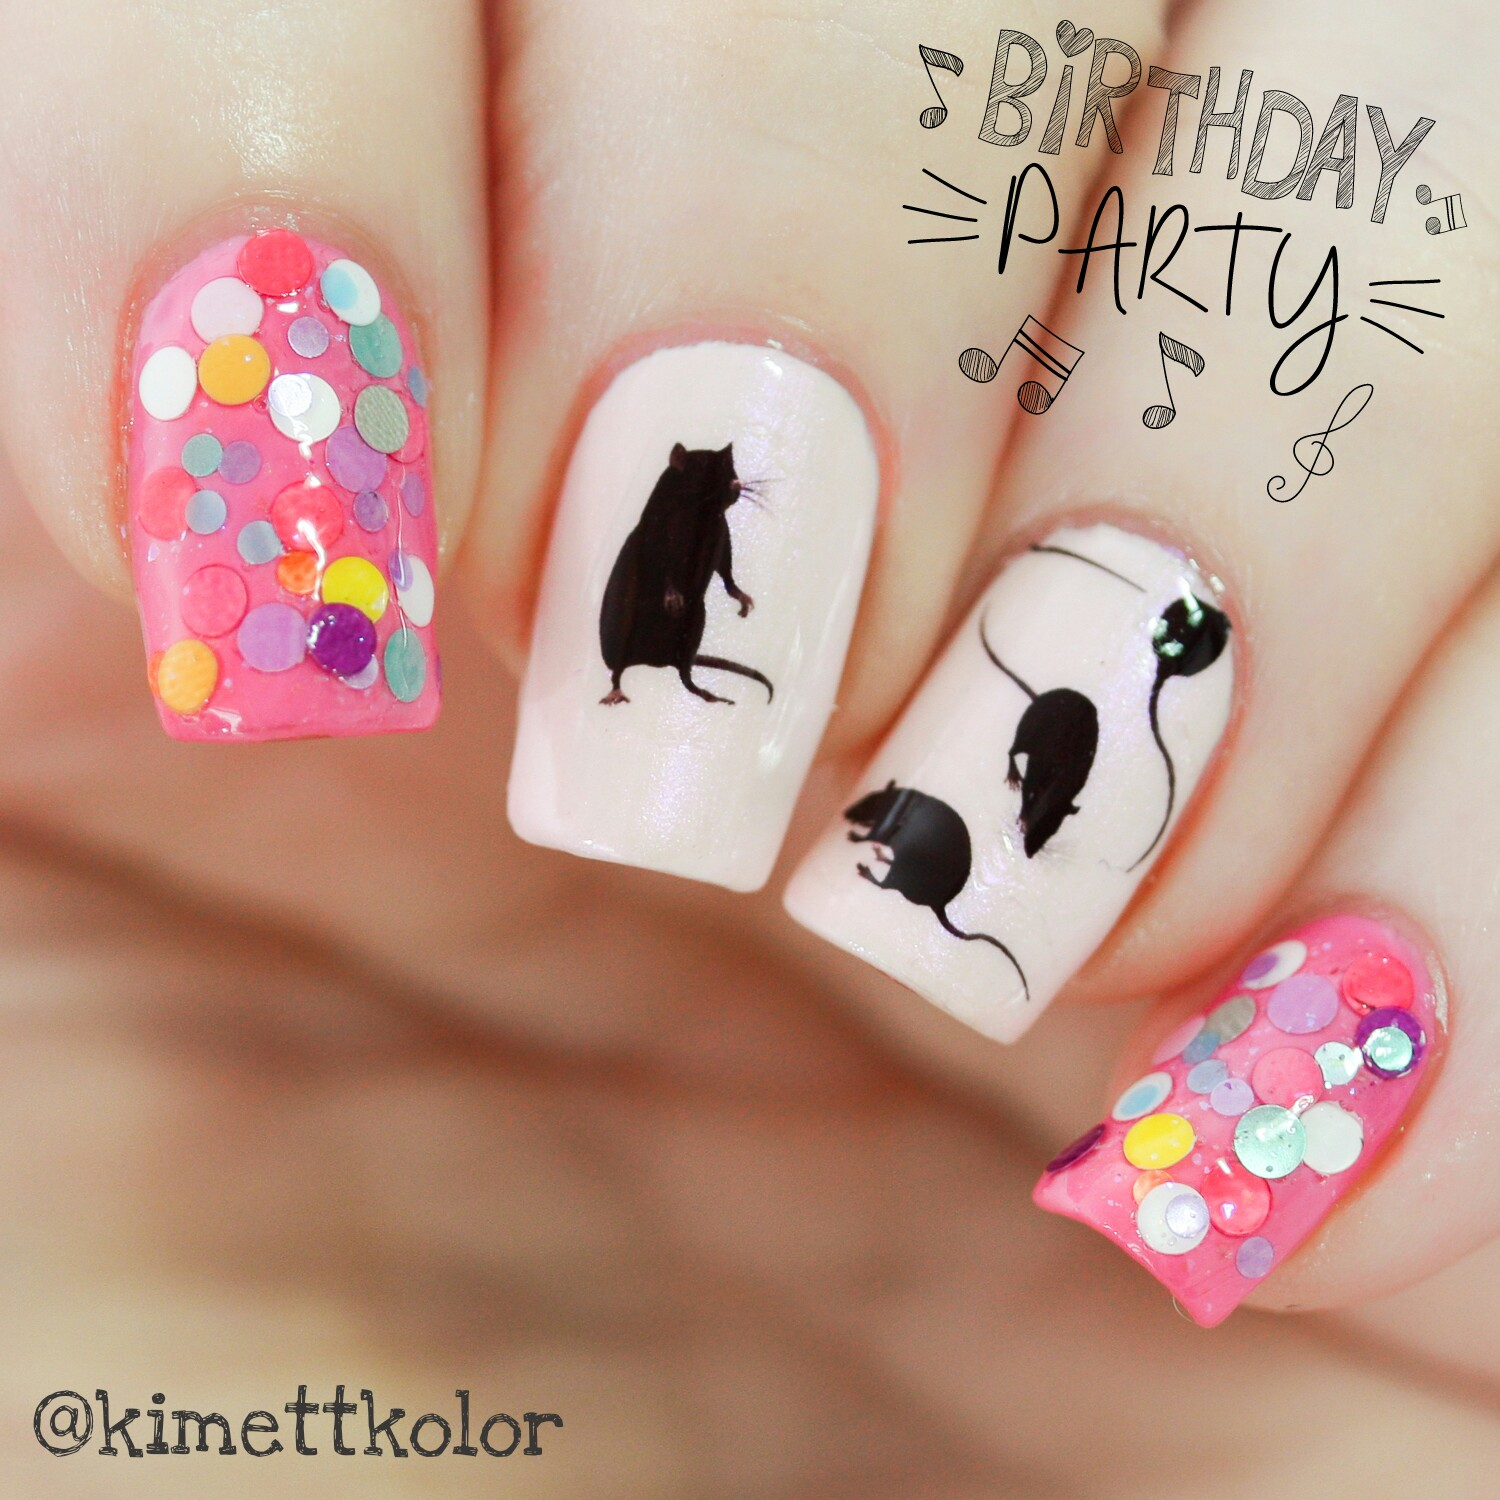 KimettKolor Ratty Birthday Party Nail Art